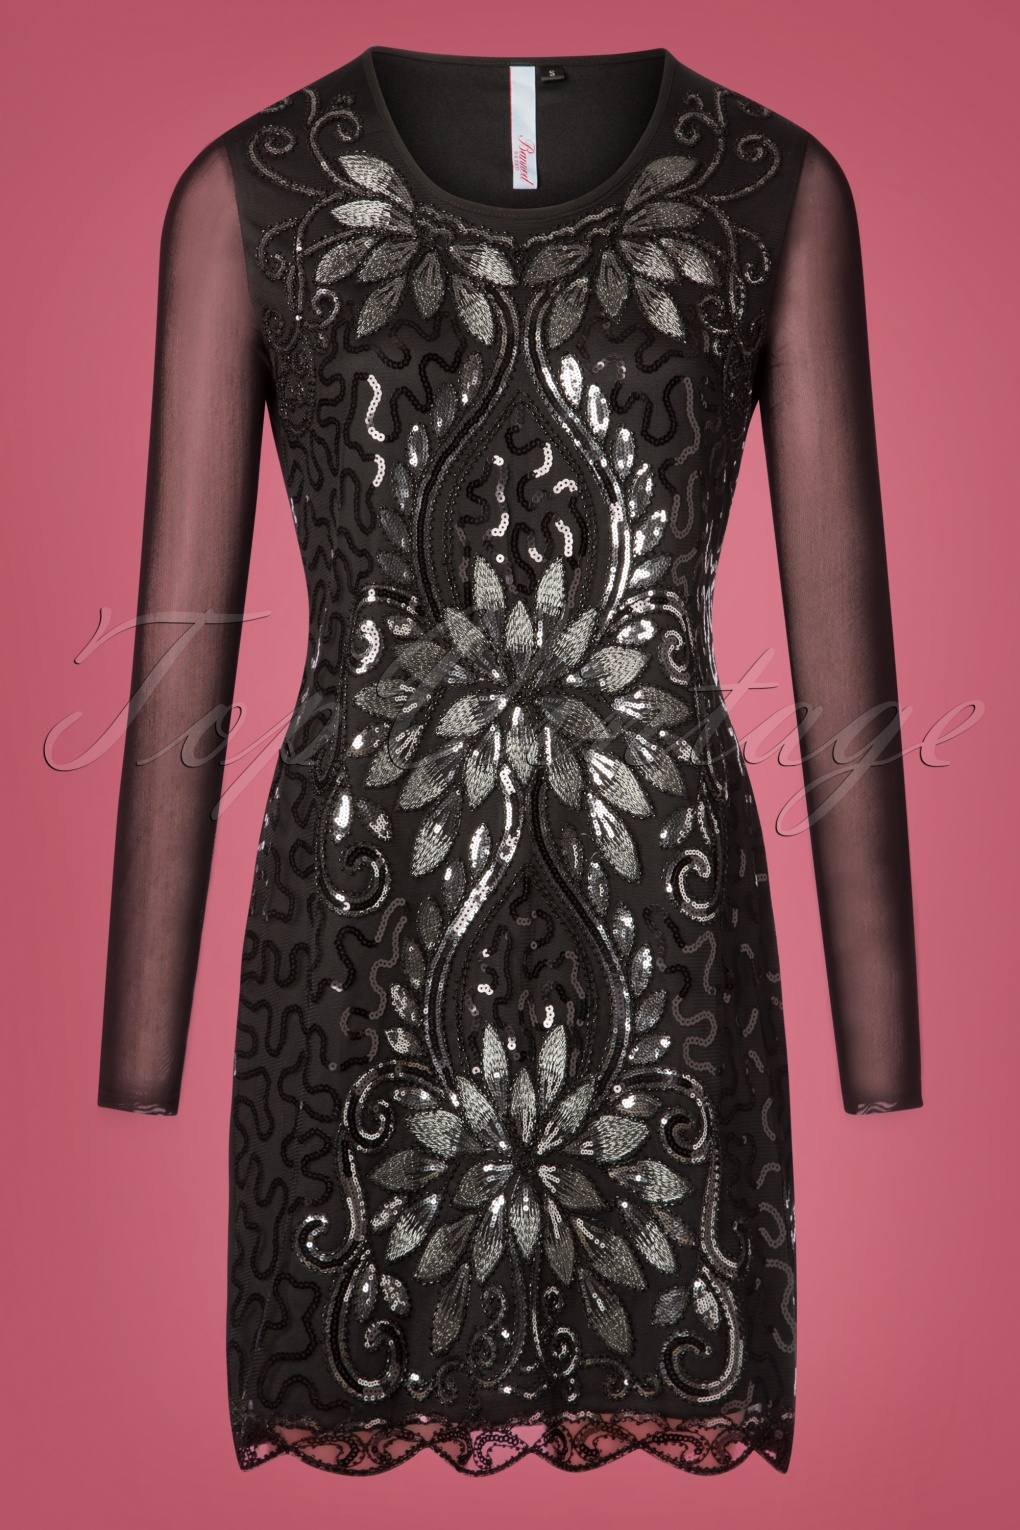 1920s Evening Dresses & Formal Gowns 20s Lillian Sequin Dress in Black £50.45 AT vintagedancer.com